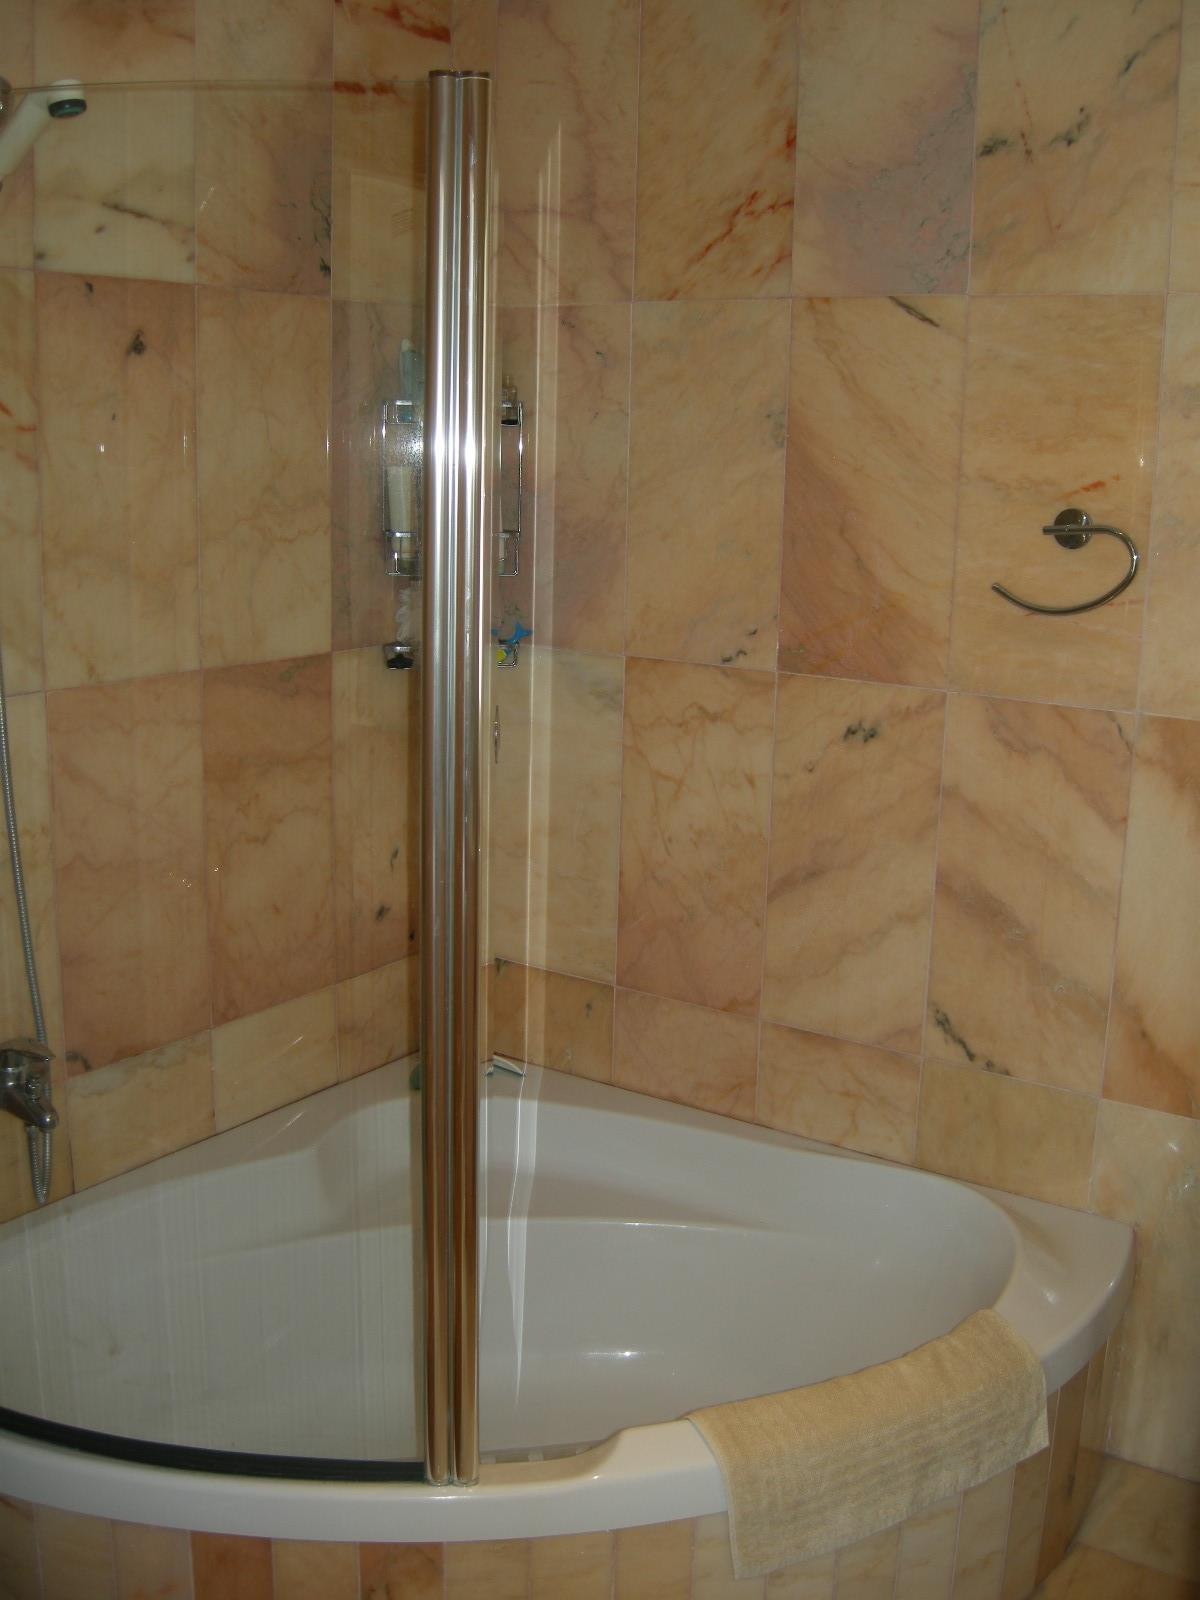 shower in one of the bathrooms